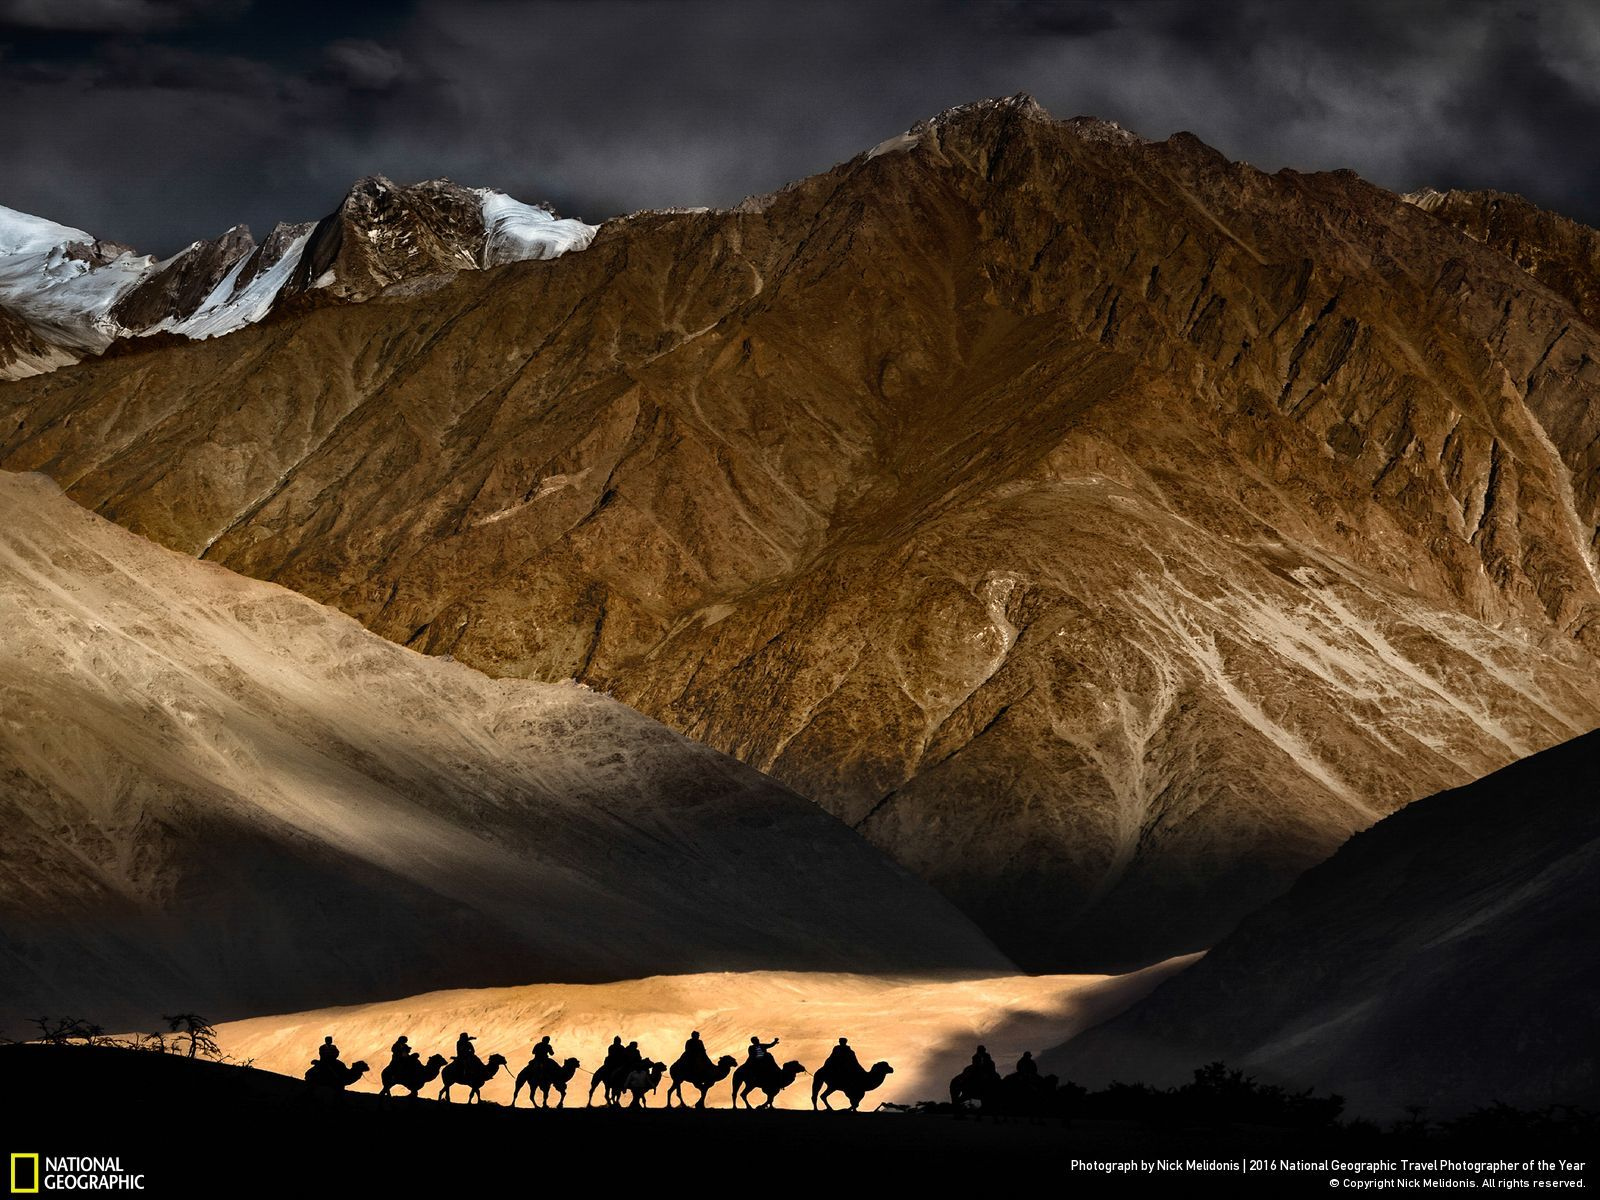 Concursul National Geographic Travel Photographer of the Year 2016